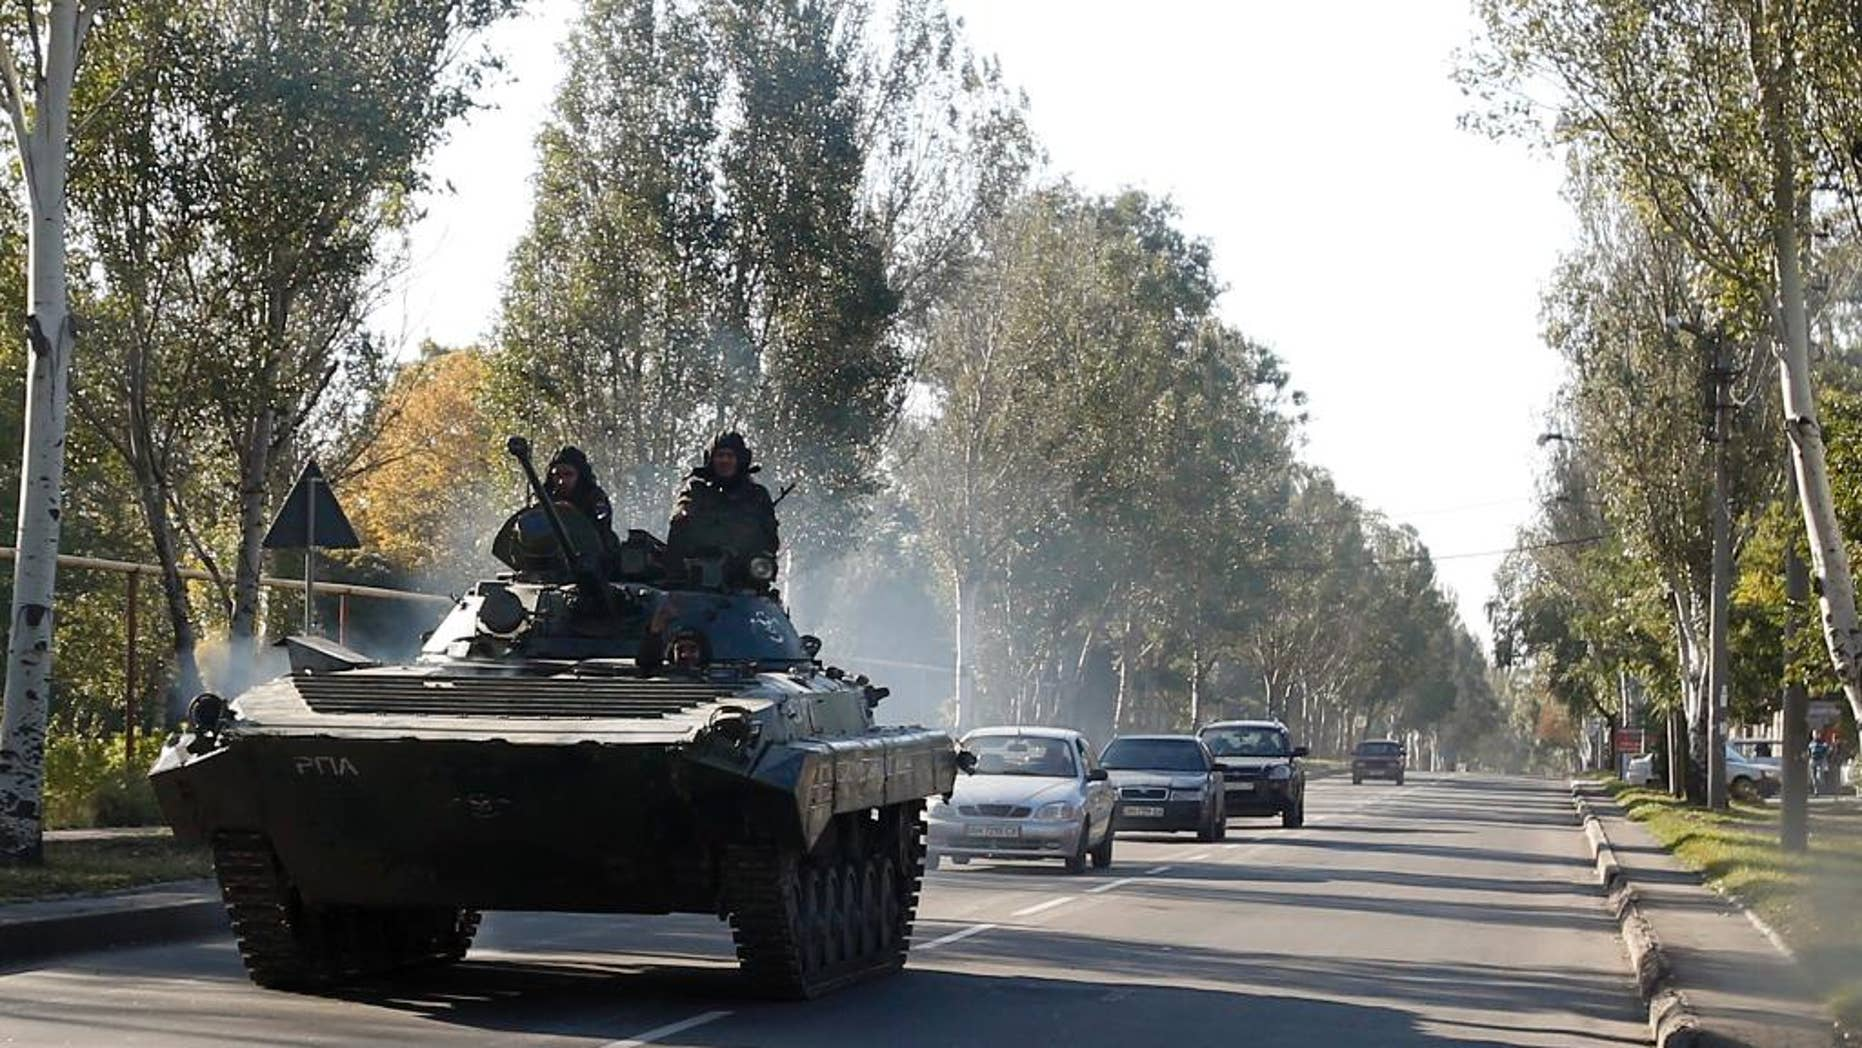 A pro-Russian  armored personal carrier passes through the town of Donetsk, eastern Ukraine, Thursday, Oct. 2, 2014. Pro-Russian rebels in eastern Ukraine advanced Wednesday on the government-held airport in Donetsk, pressing to seize the key transportation hub even as the two sides bargained over a troop pullout under a much-violated truce. (AP Photo/Darko Vojinovic)